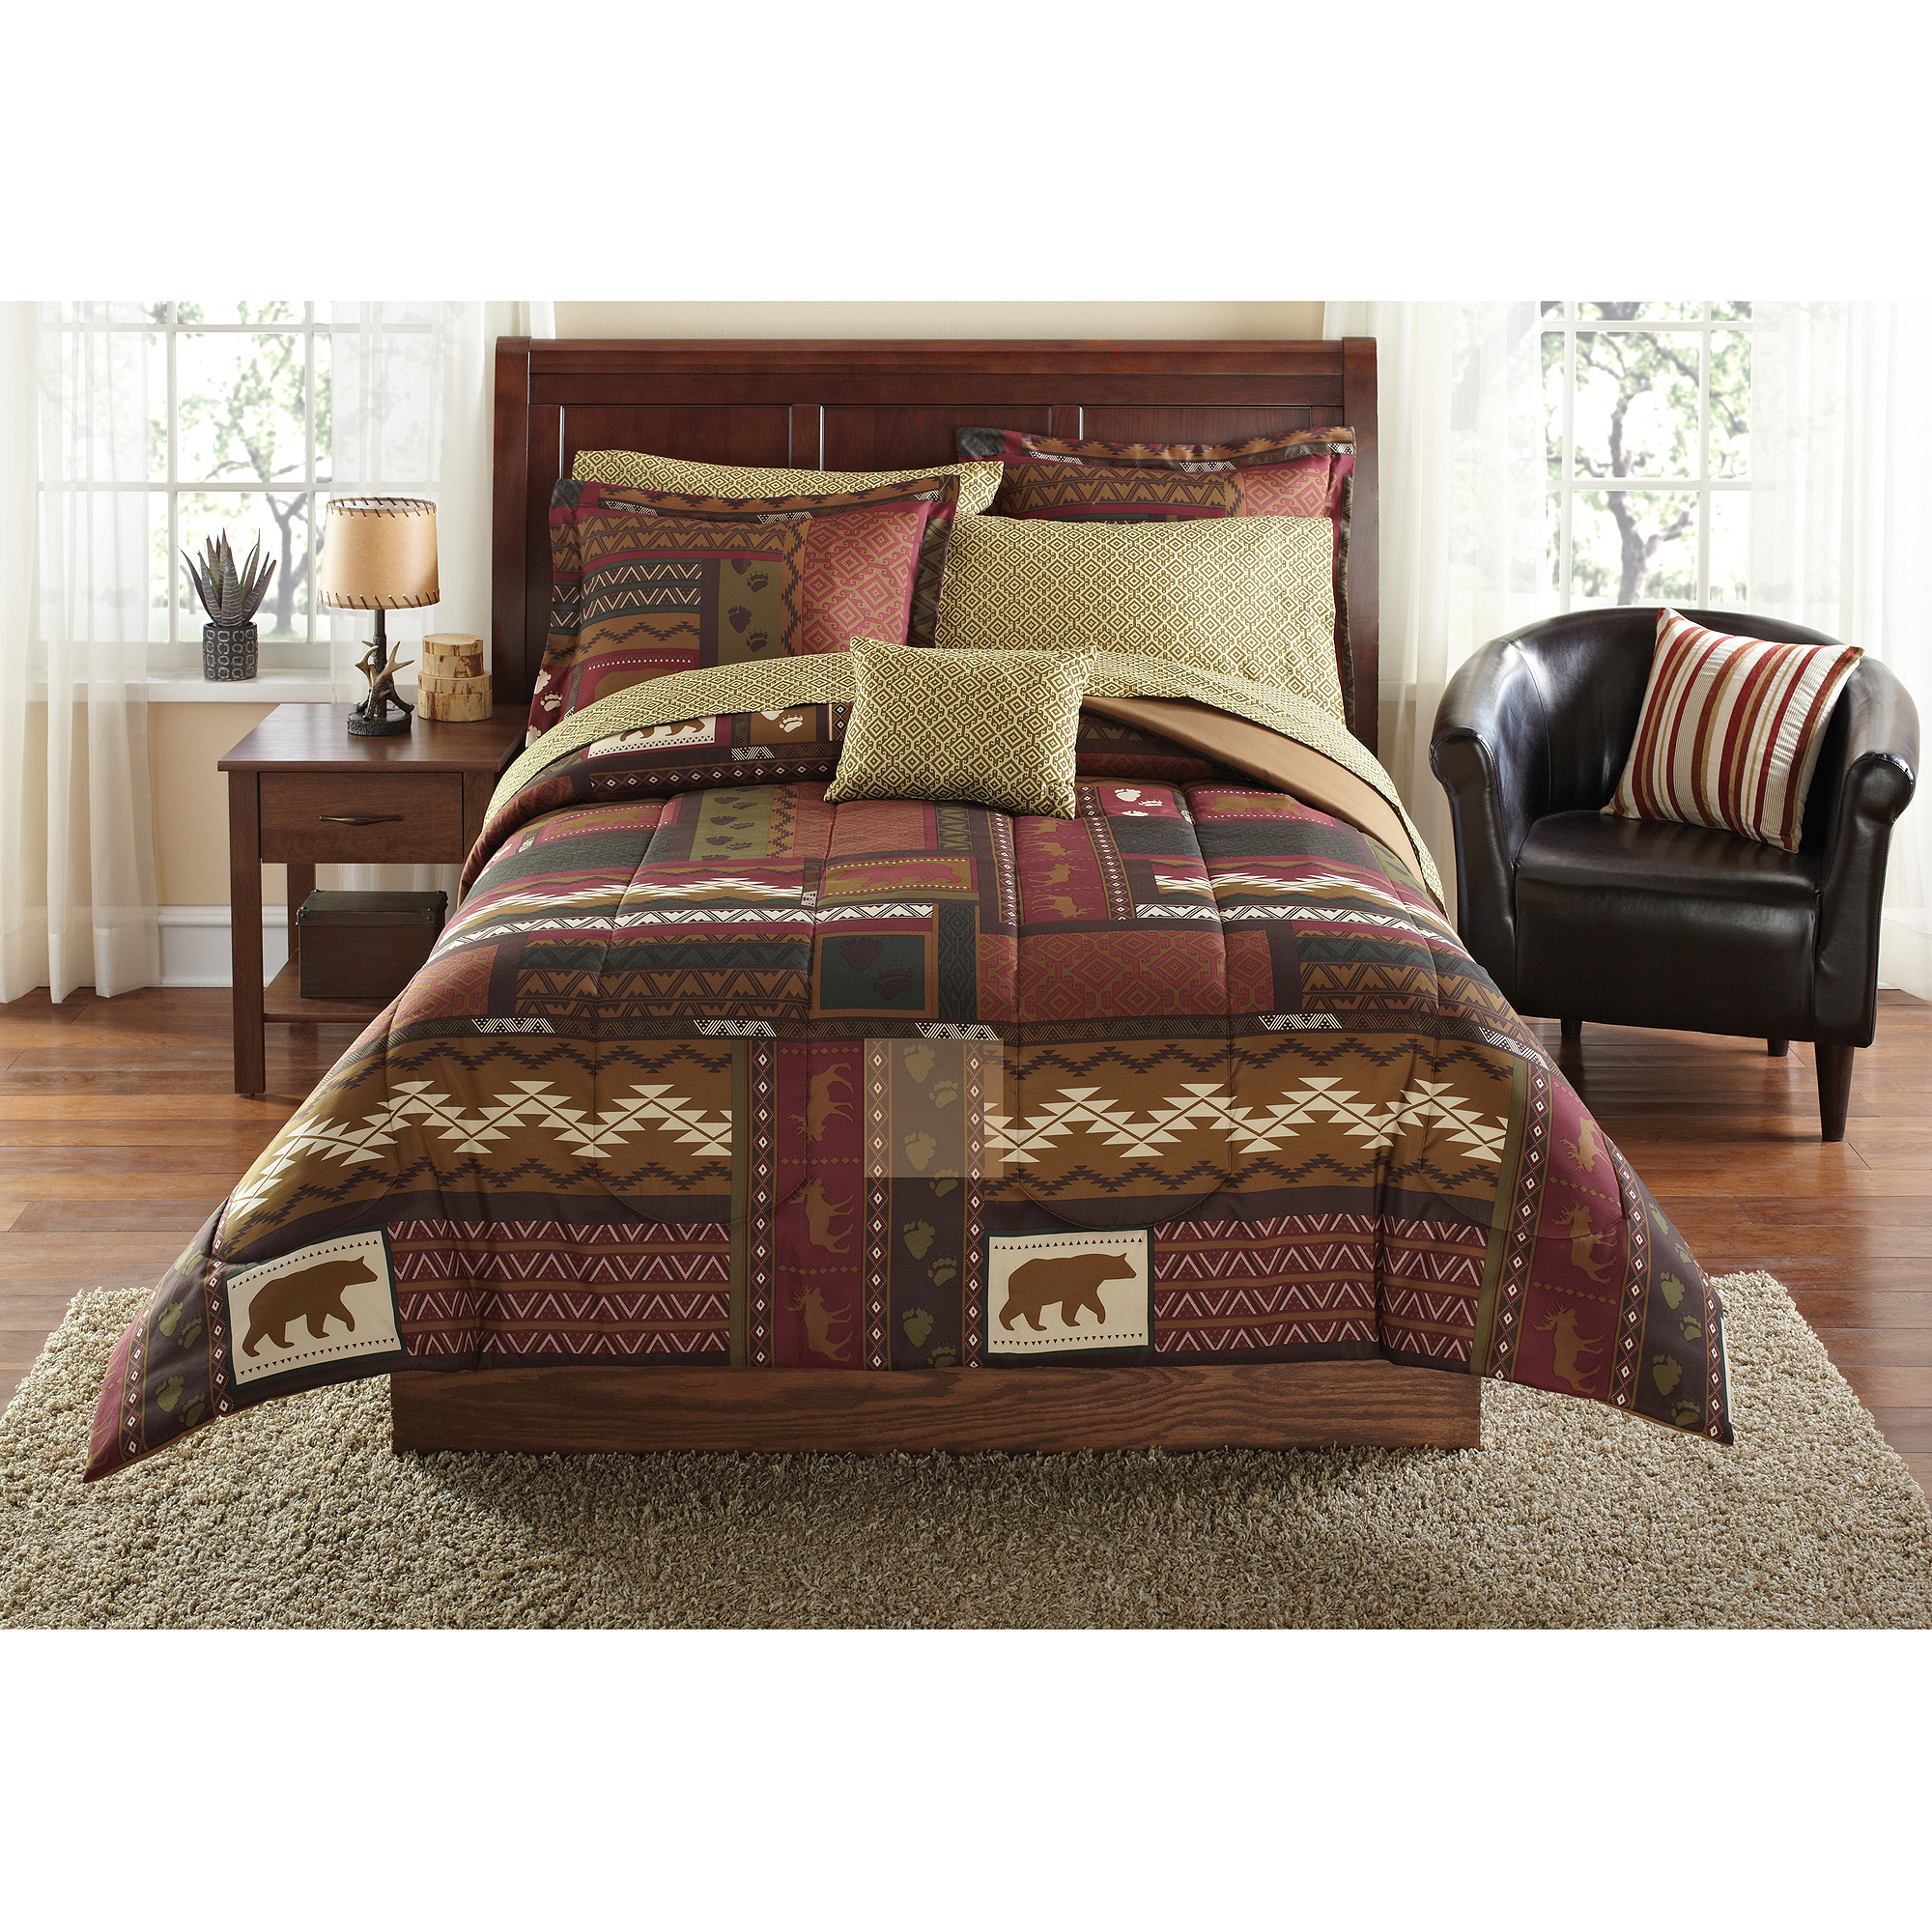 Mainstays Cabin Bed In A Bag Coordinating Bedding Set   Walmart.com